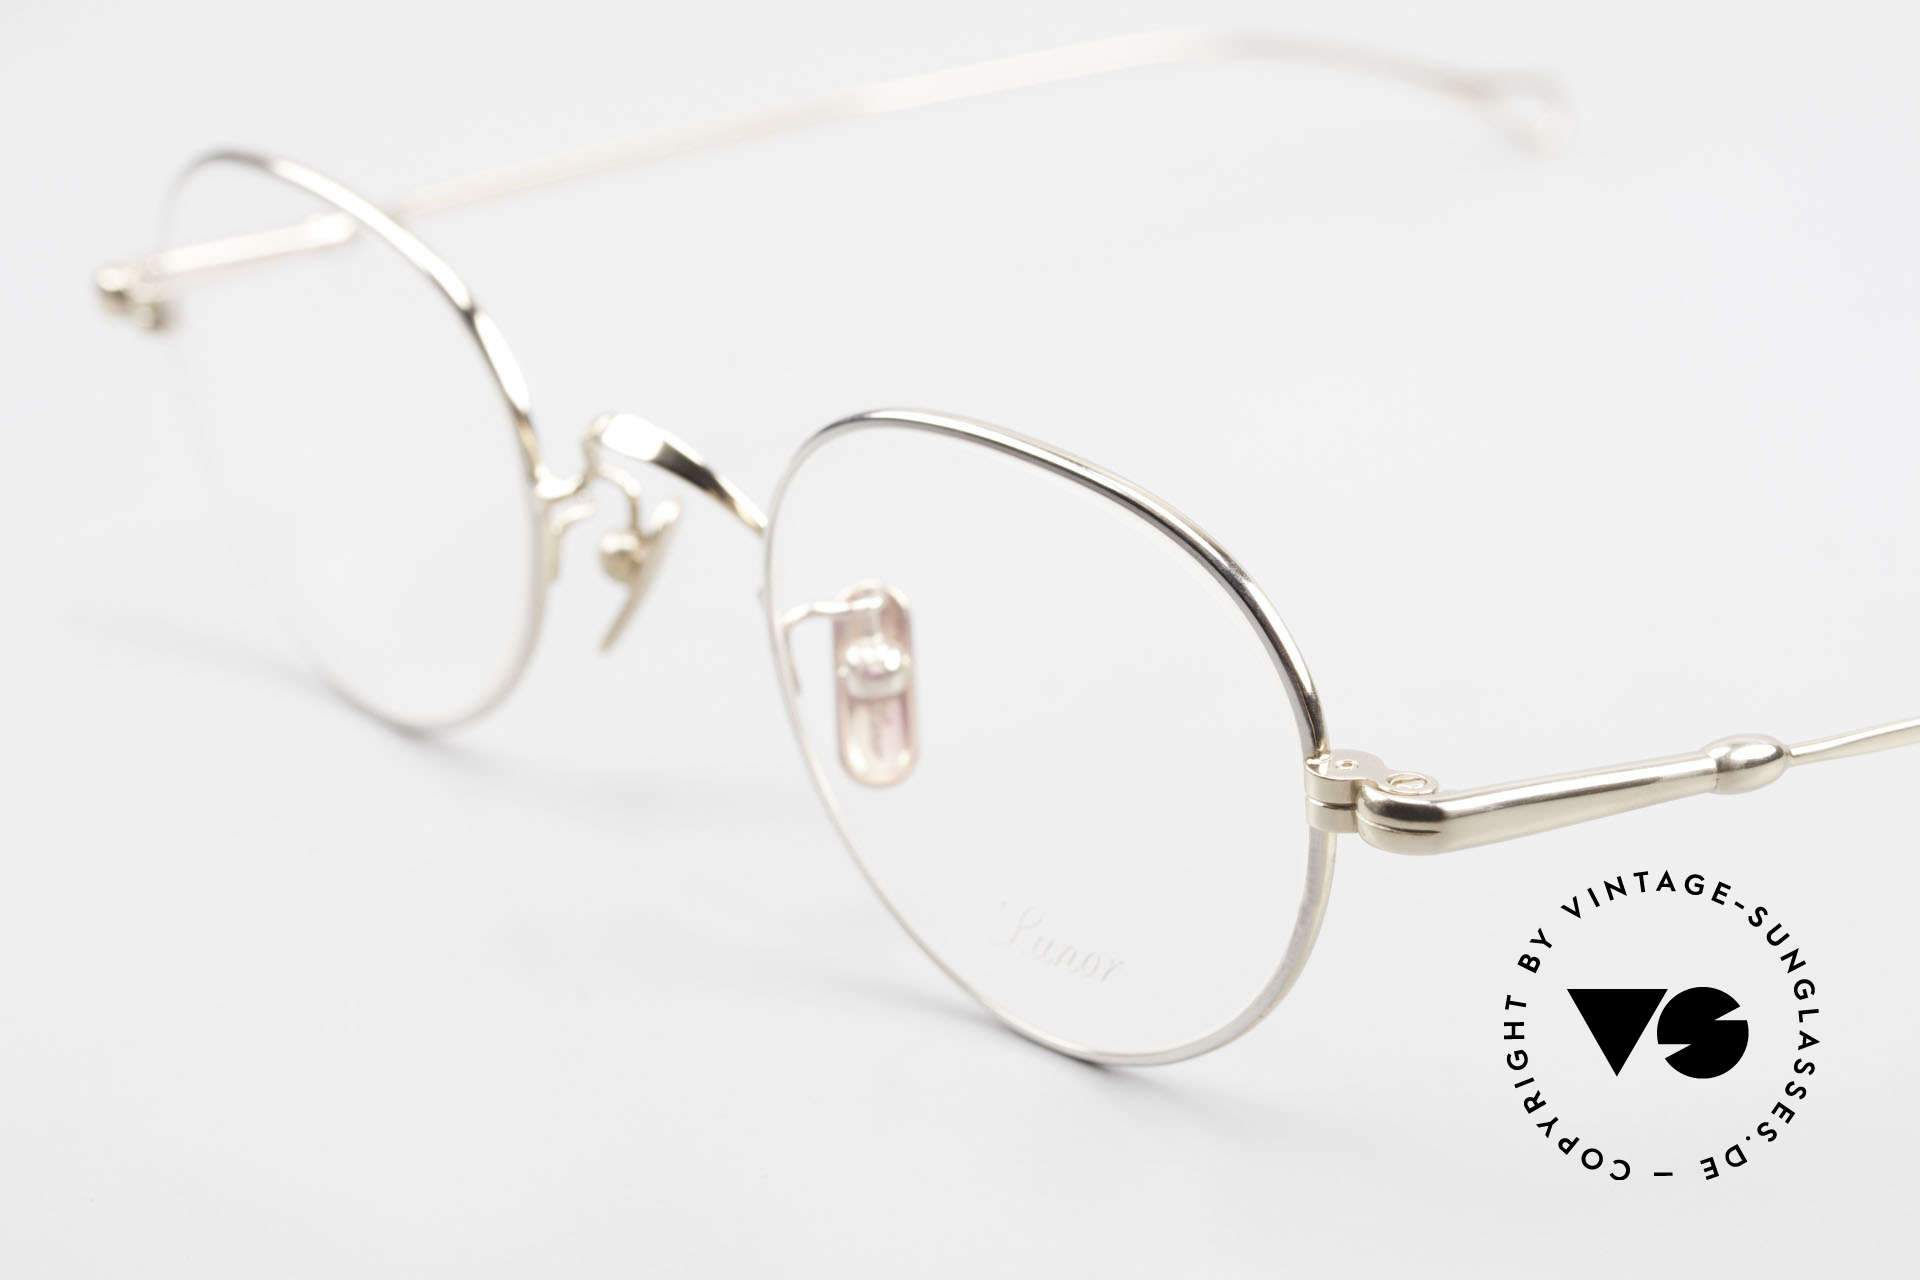 Lunor V 108 Bicolor Eyeglasses Titanium, from the 2011's collection, but in a well-known quality, Made for Men